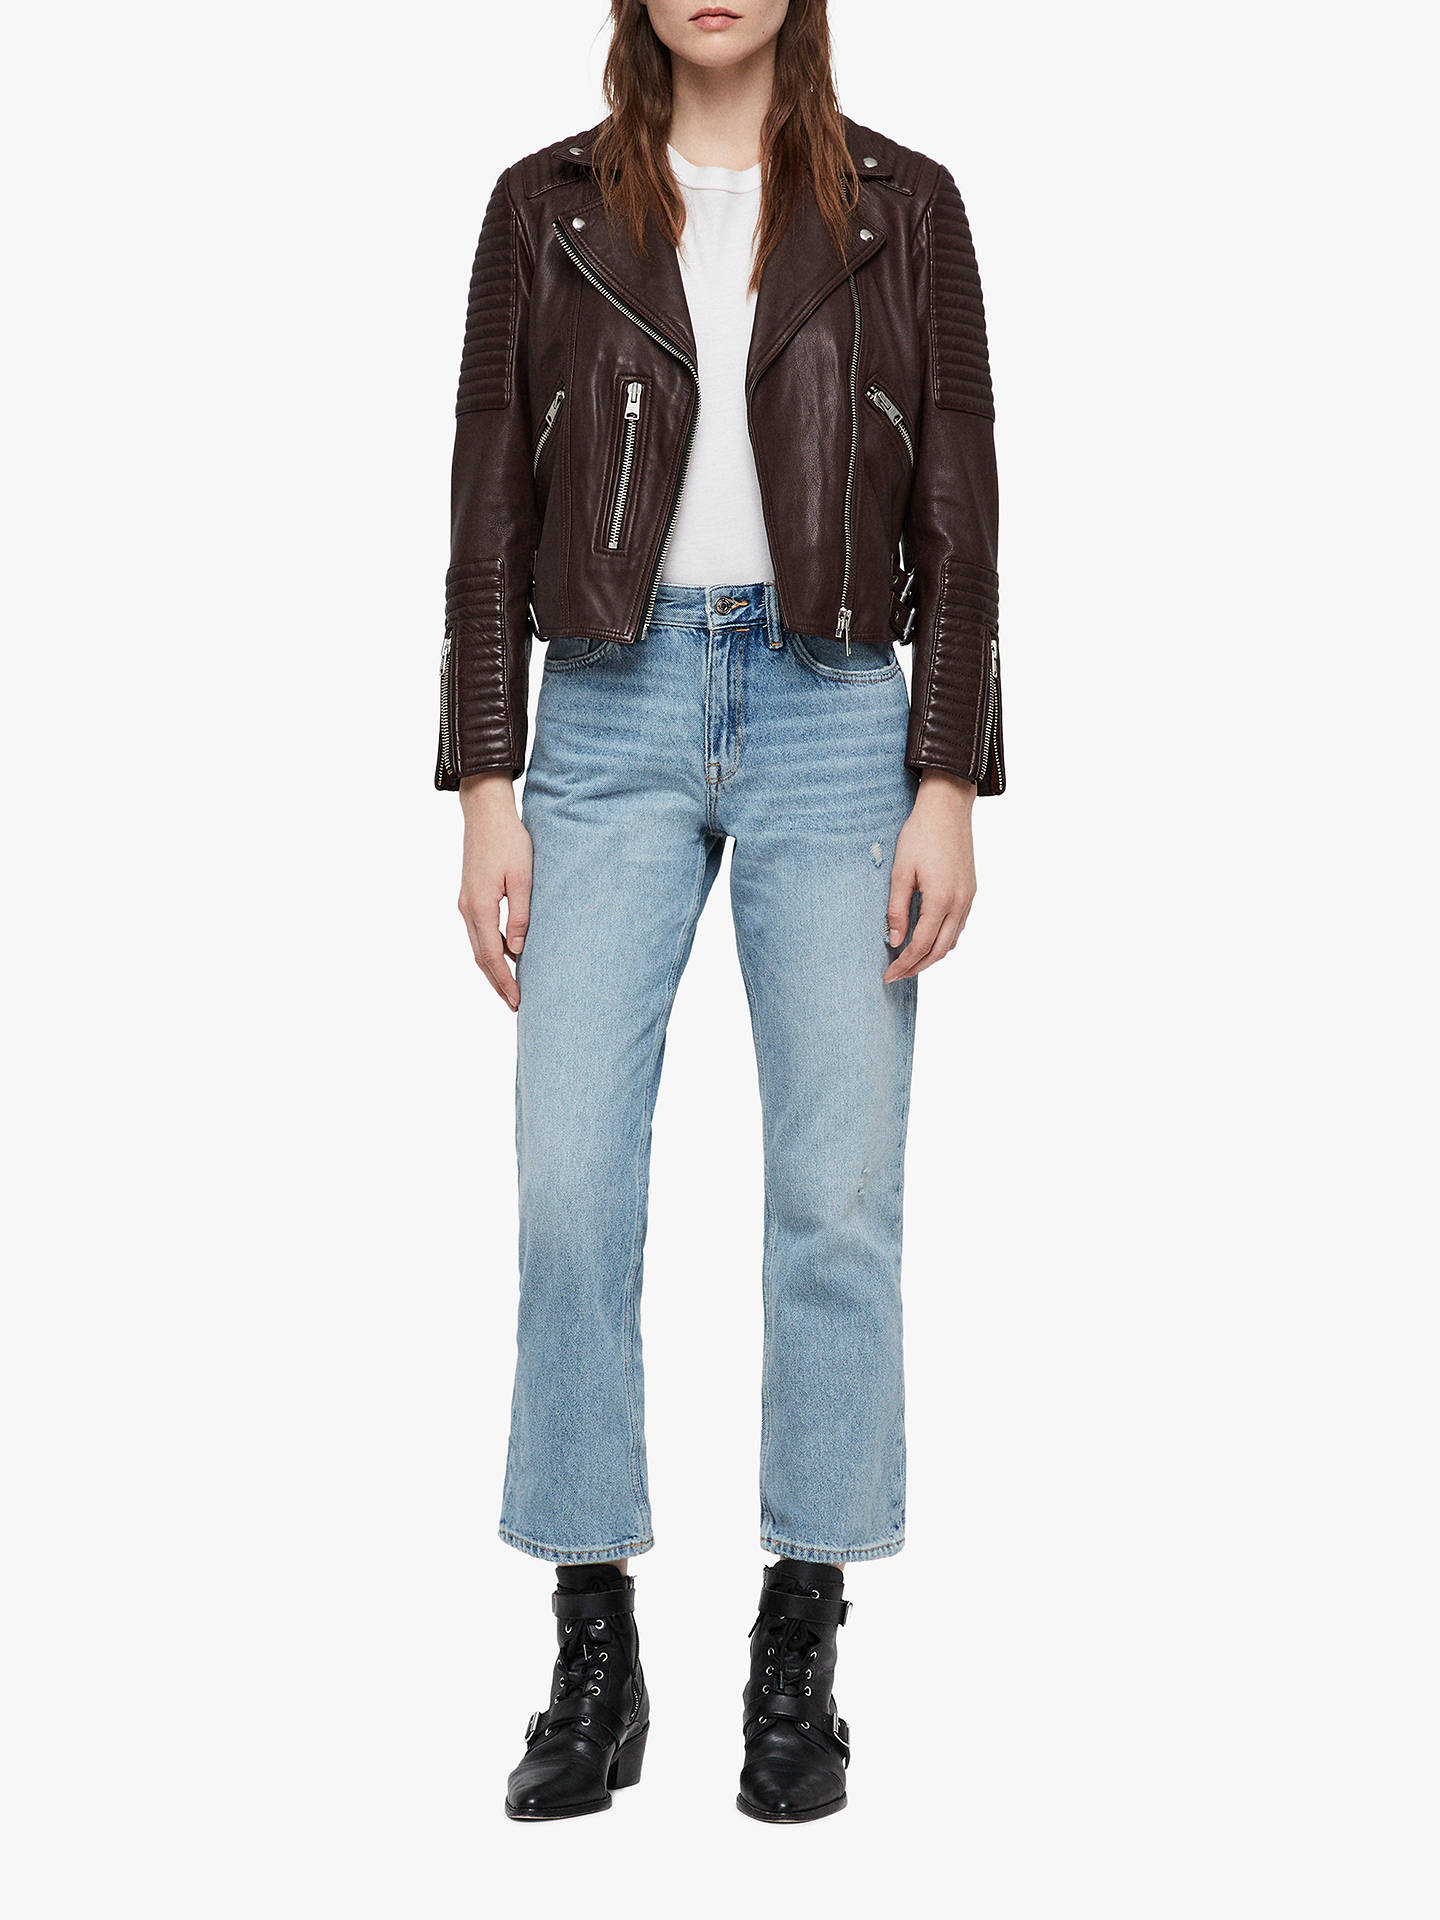 Buy AllSaints Estella Leather Biker Jacket, Bordeaux Red, 10 Online at johnlewis.com